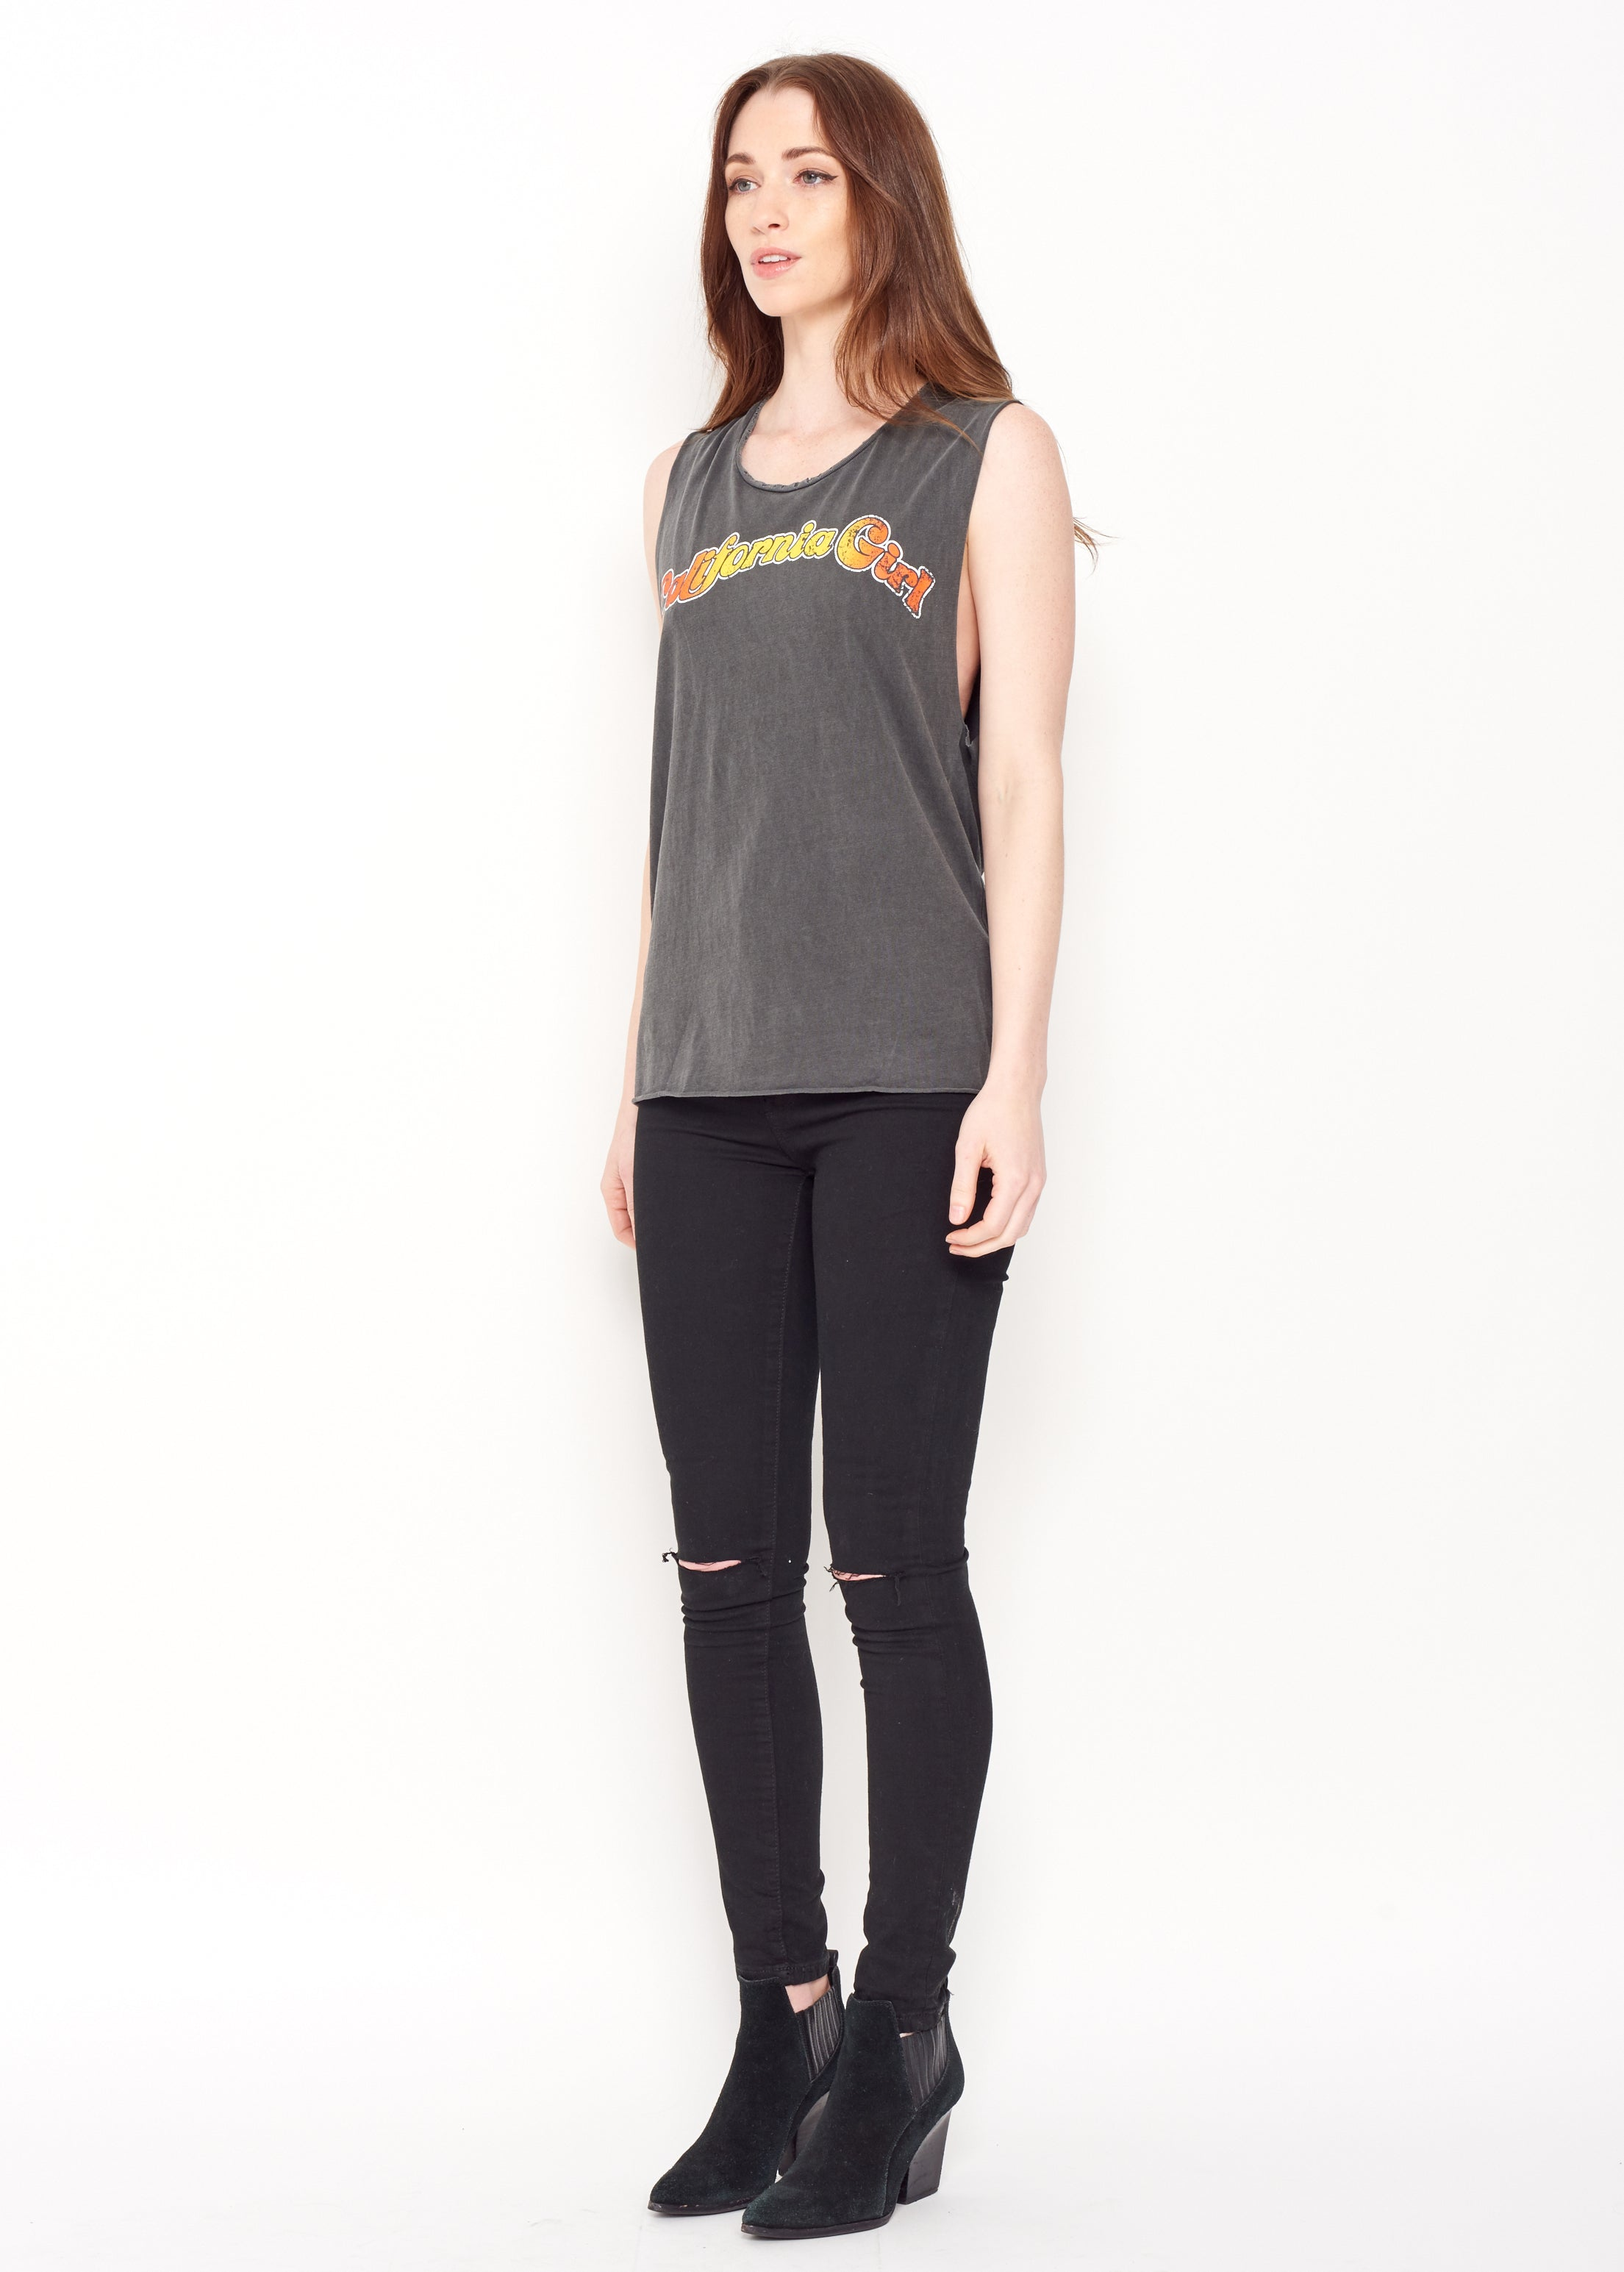 California Girl Muscle Tee - Women's Muscle Tee - Midnight Rider